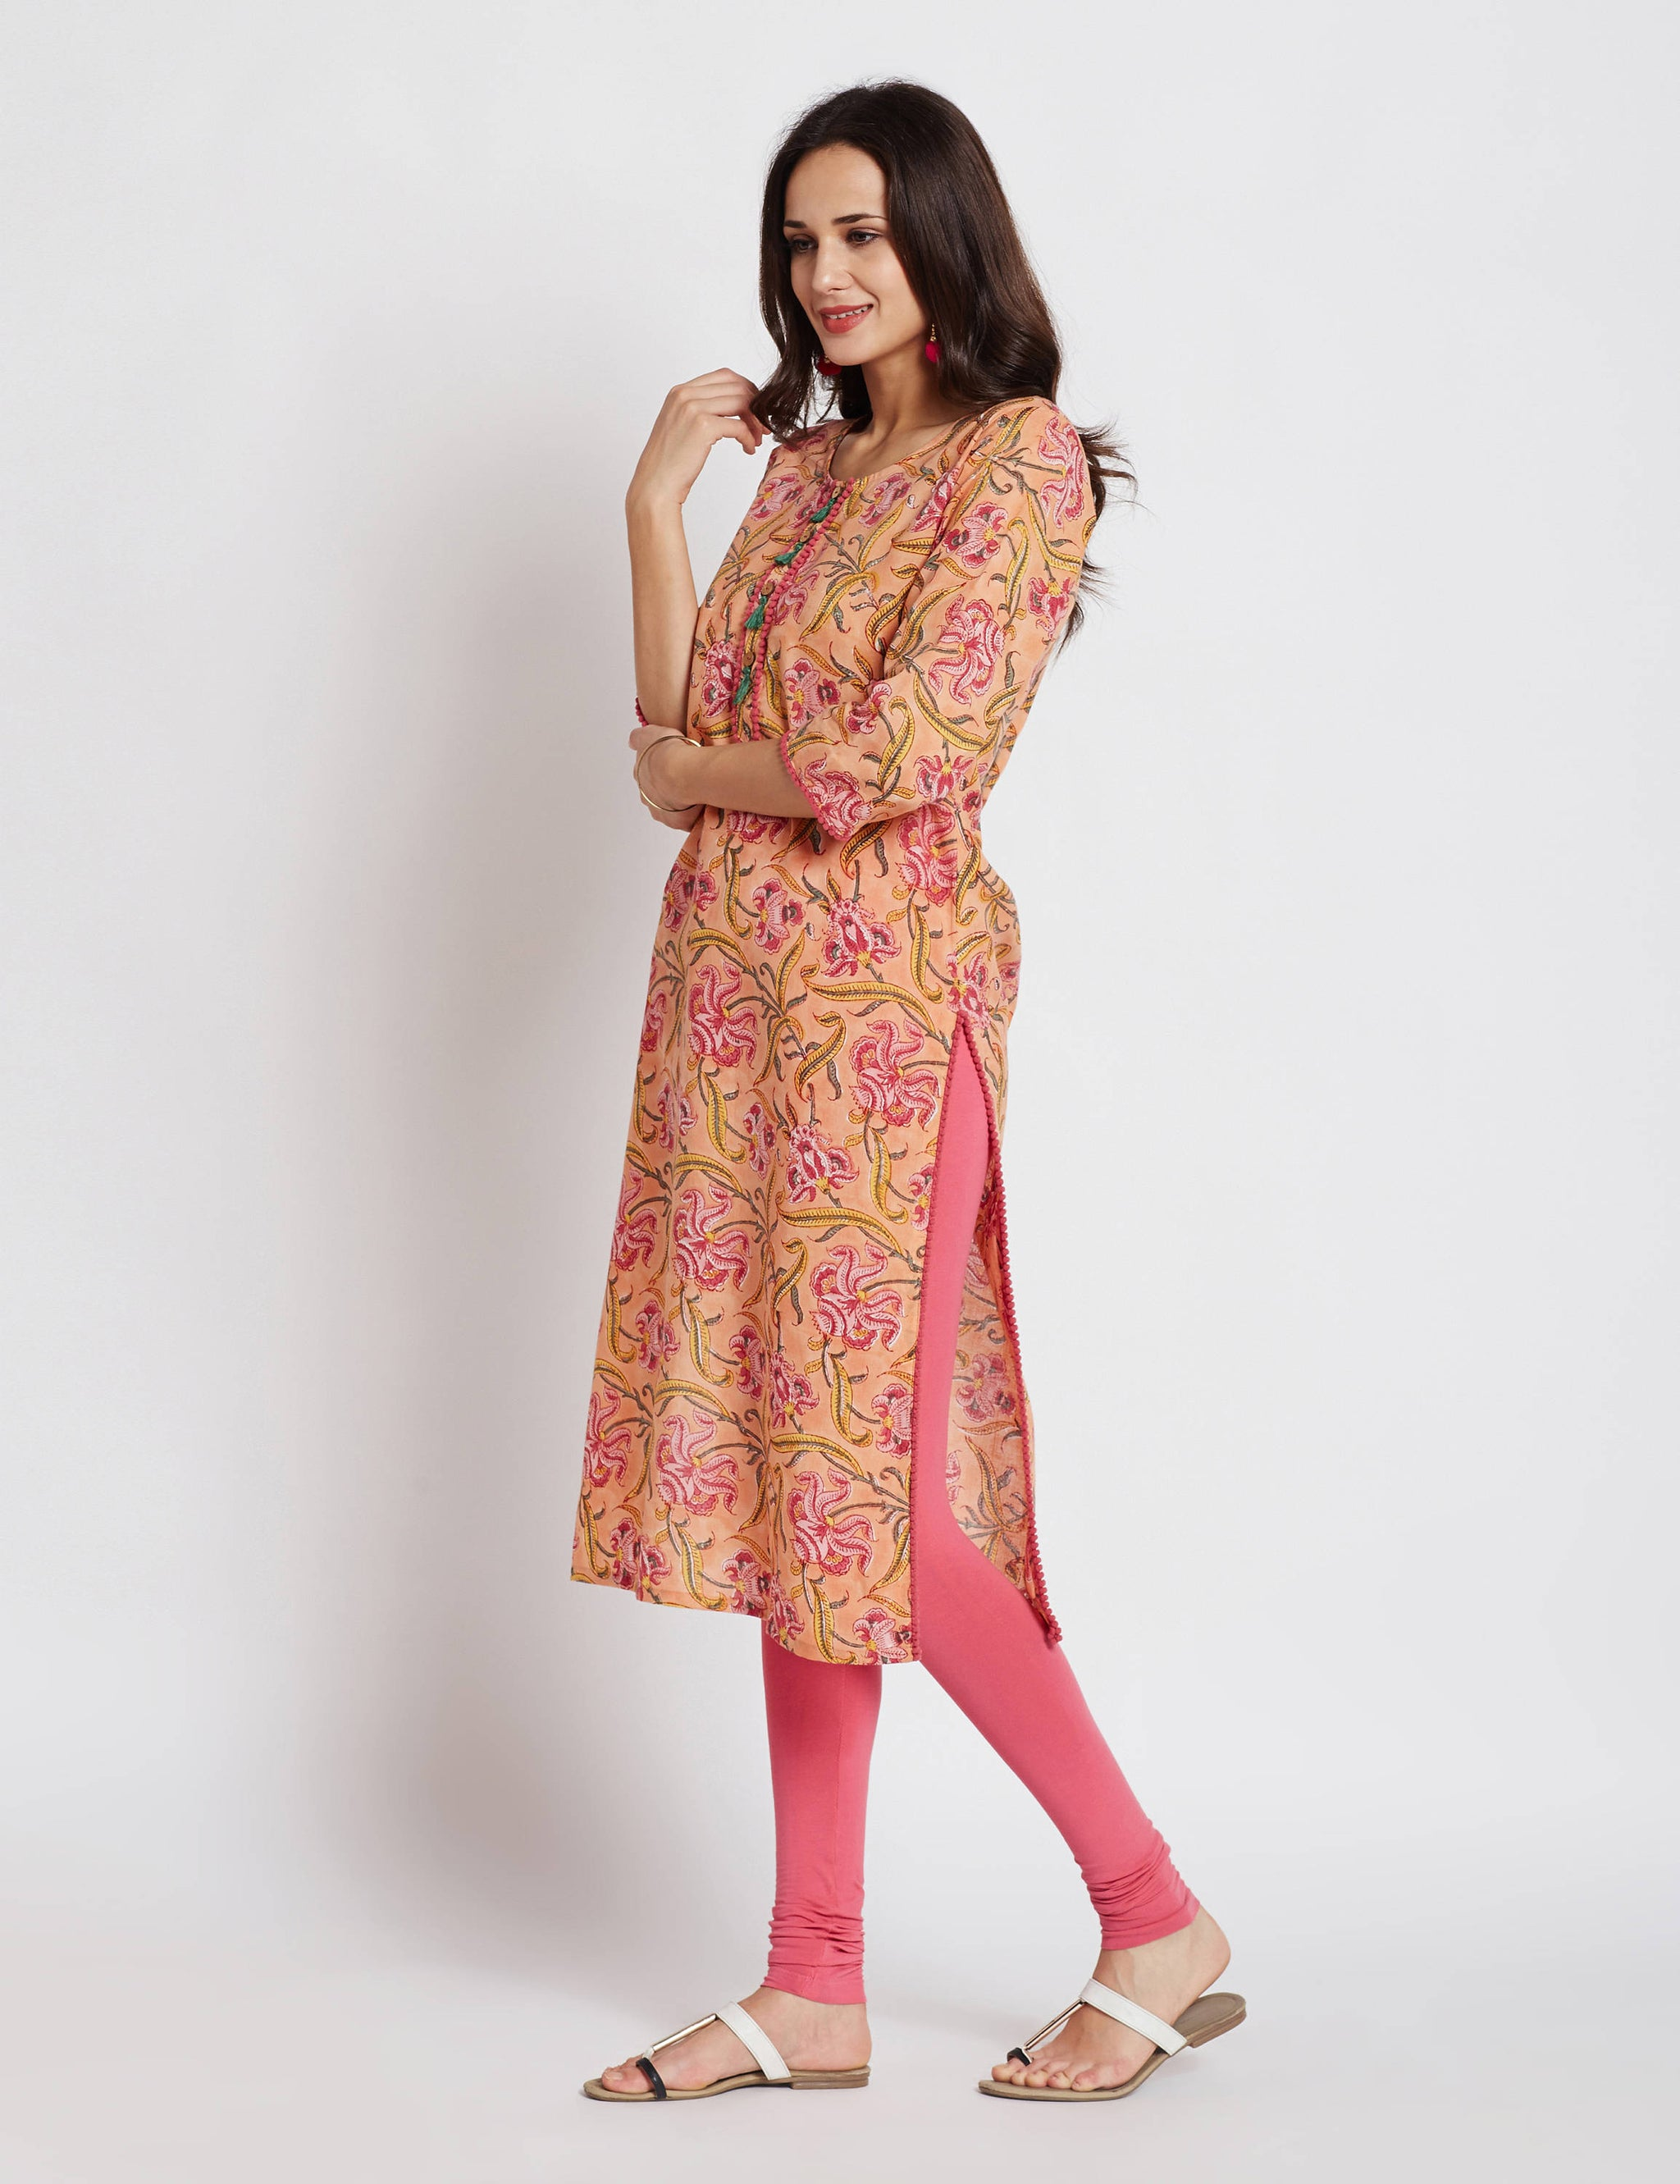 Hand block printed ethnic long Indian kurta with pompom trims & tassels on front